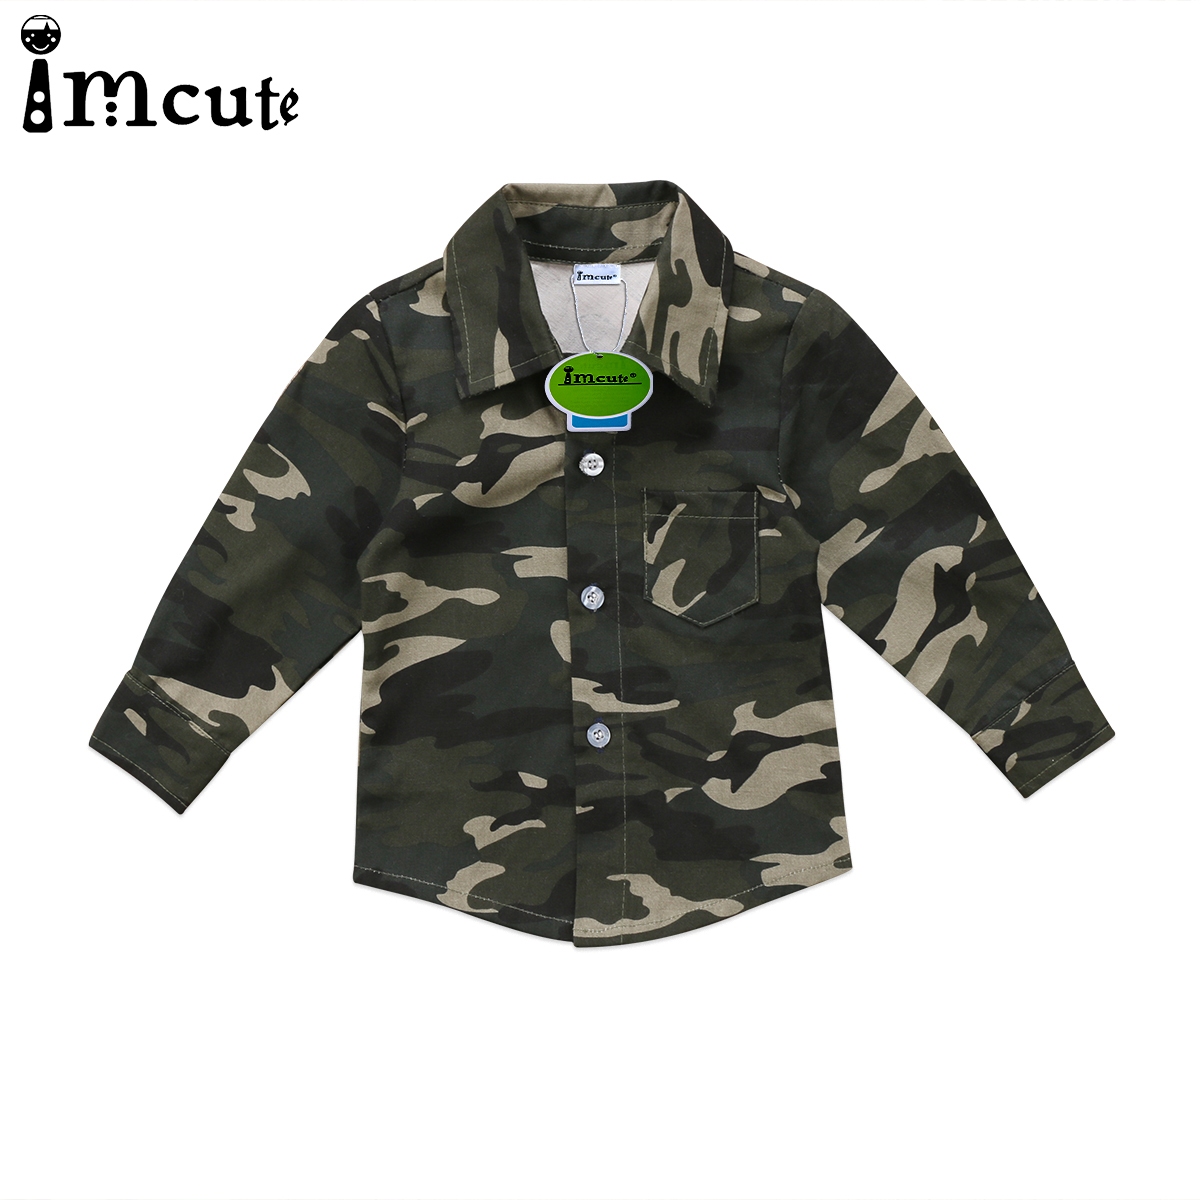 2019 New Hot Sale Latest Fashion Toddler Kids Baby Boys Girls Camouflage   Blouses   Button Tops   Shirt   Long Sleeve   shirt   Clothes